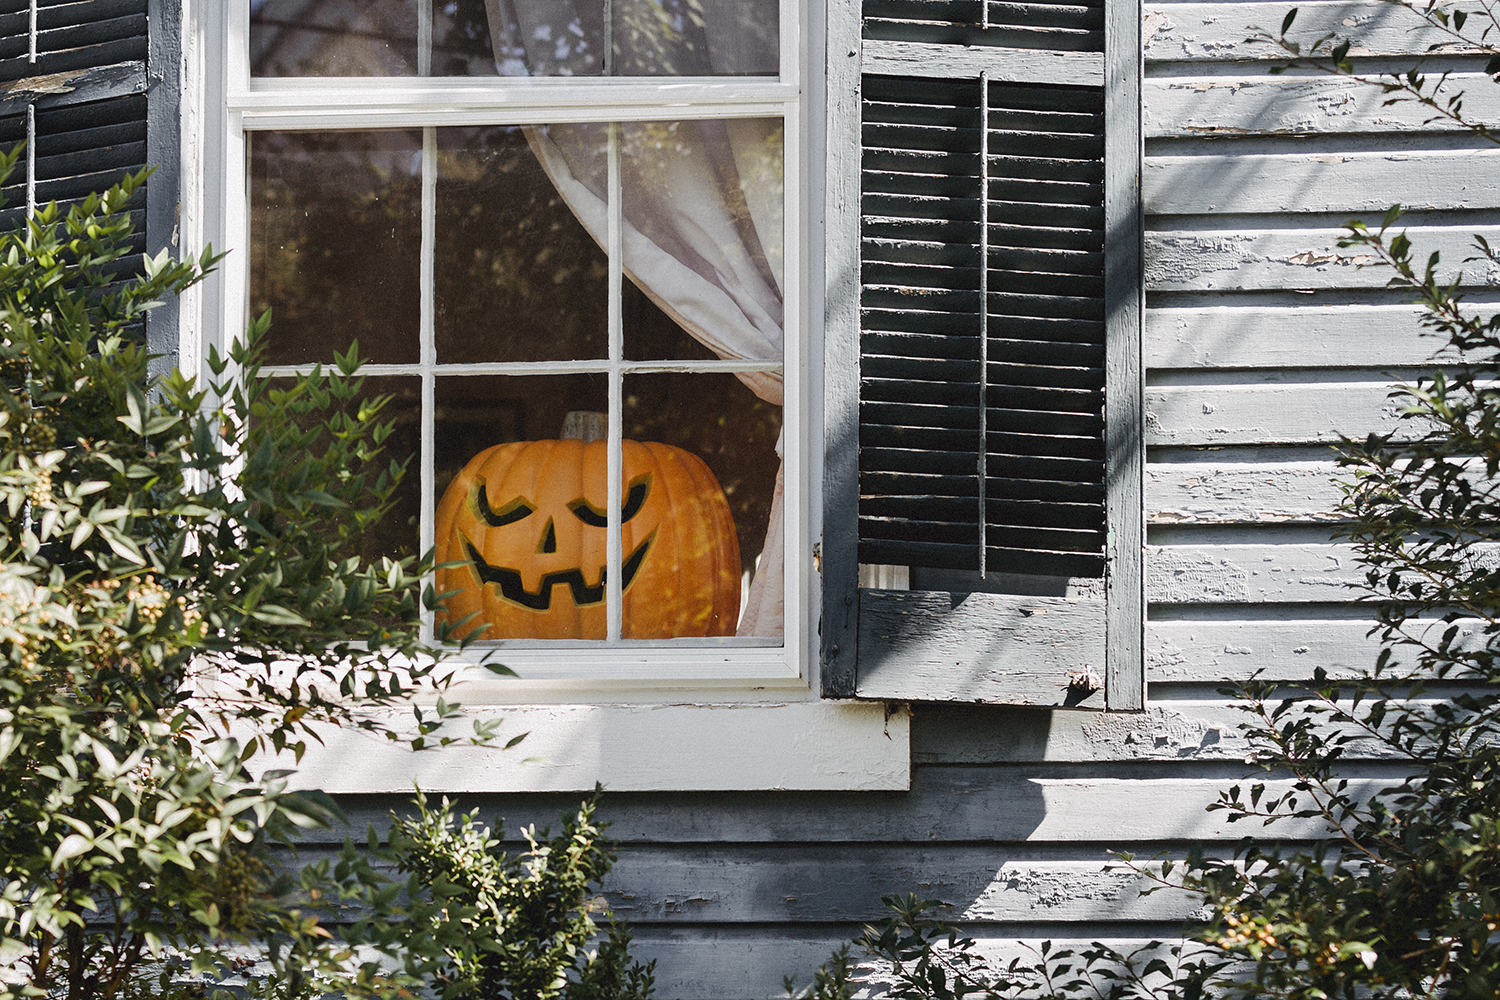 JackOLantern_in_window_0002.jpg